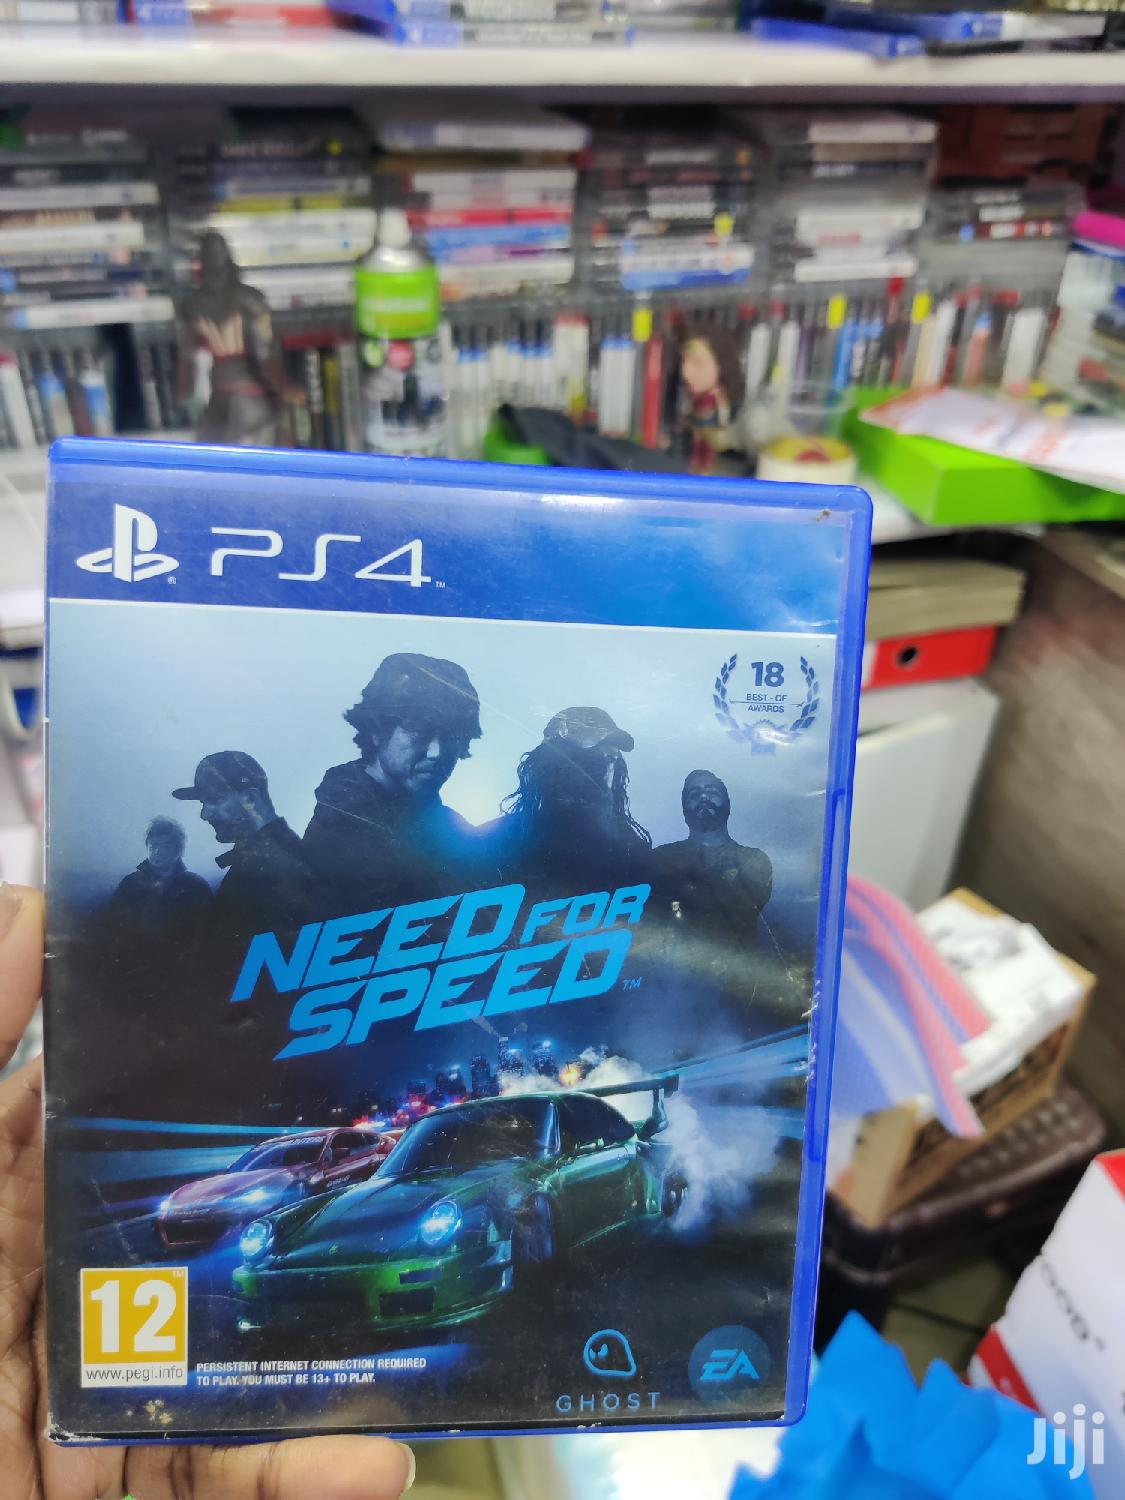 Archive: Ps4 Need for Speed Ghost Nfs